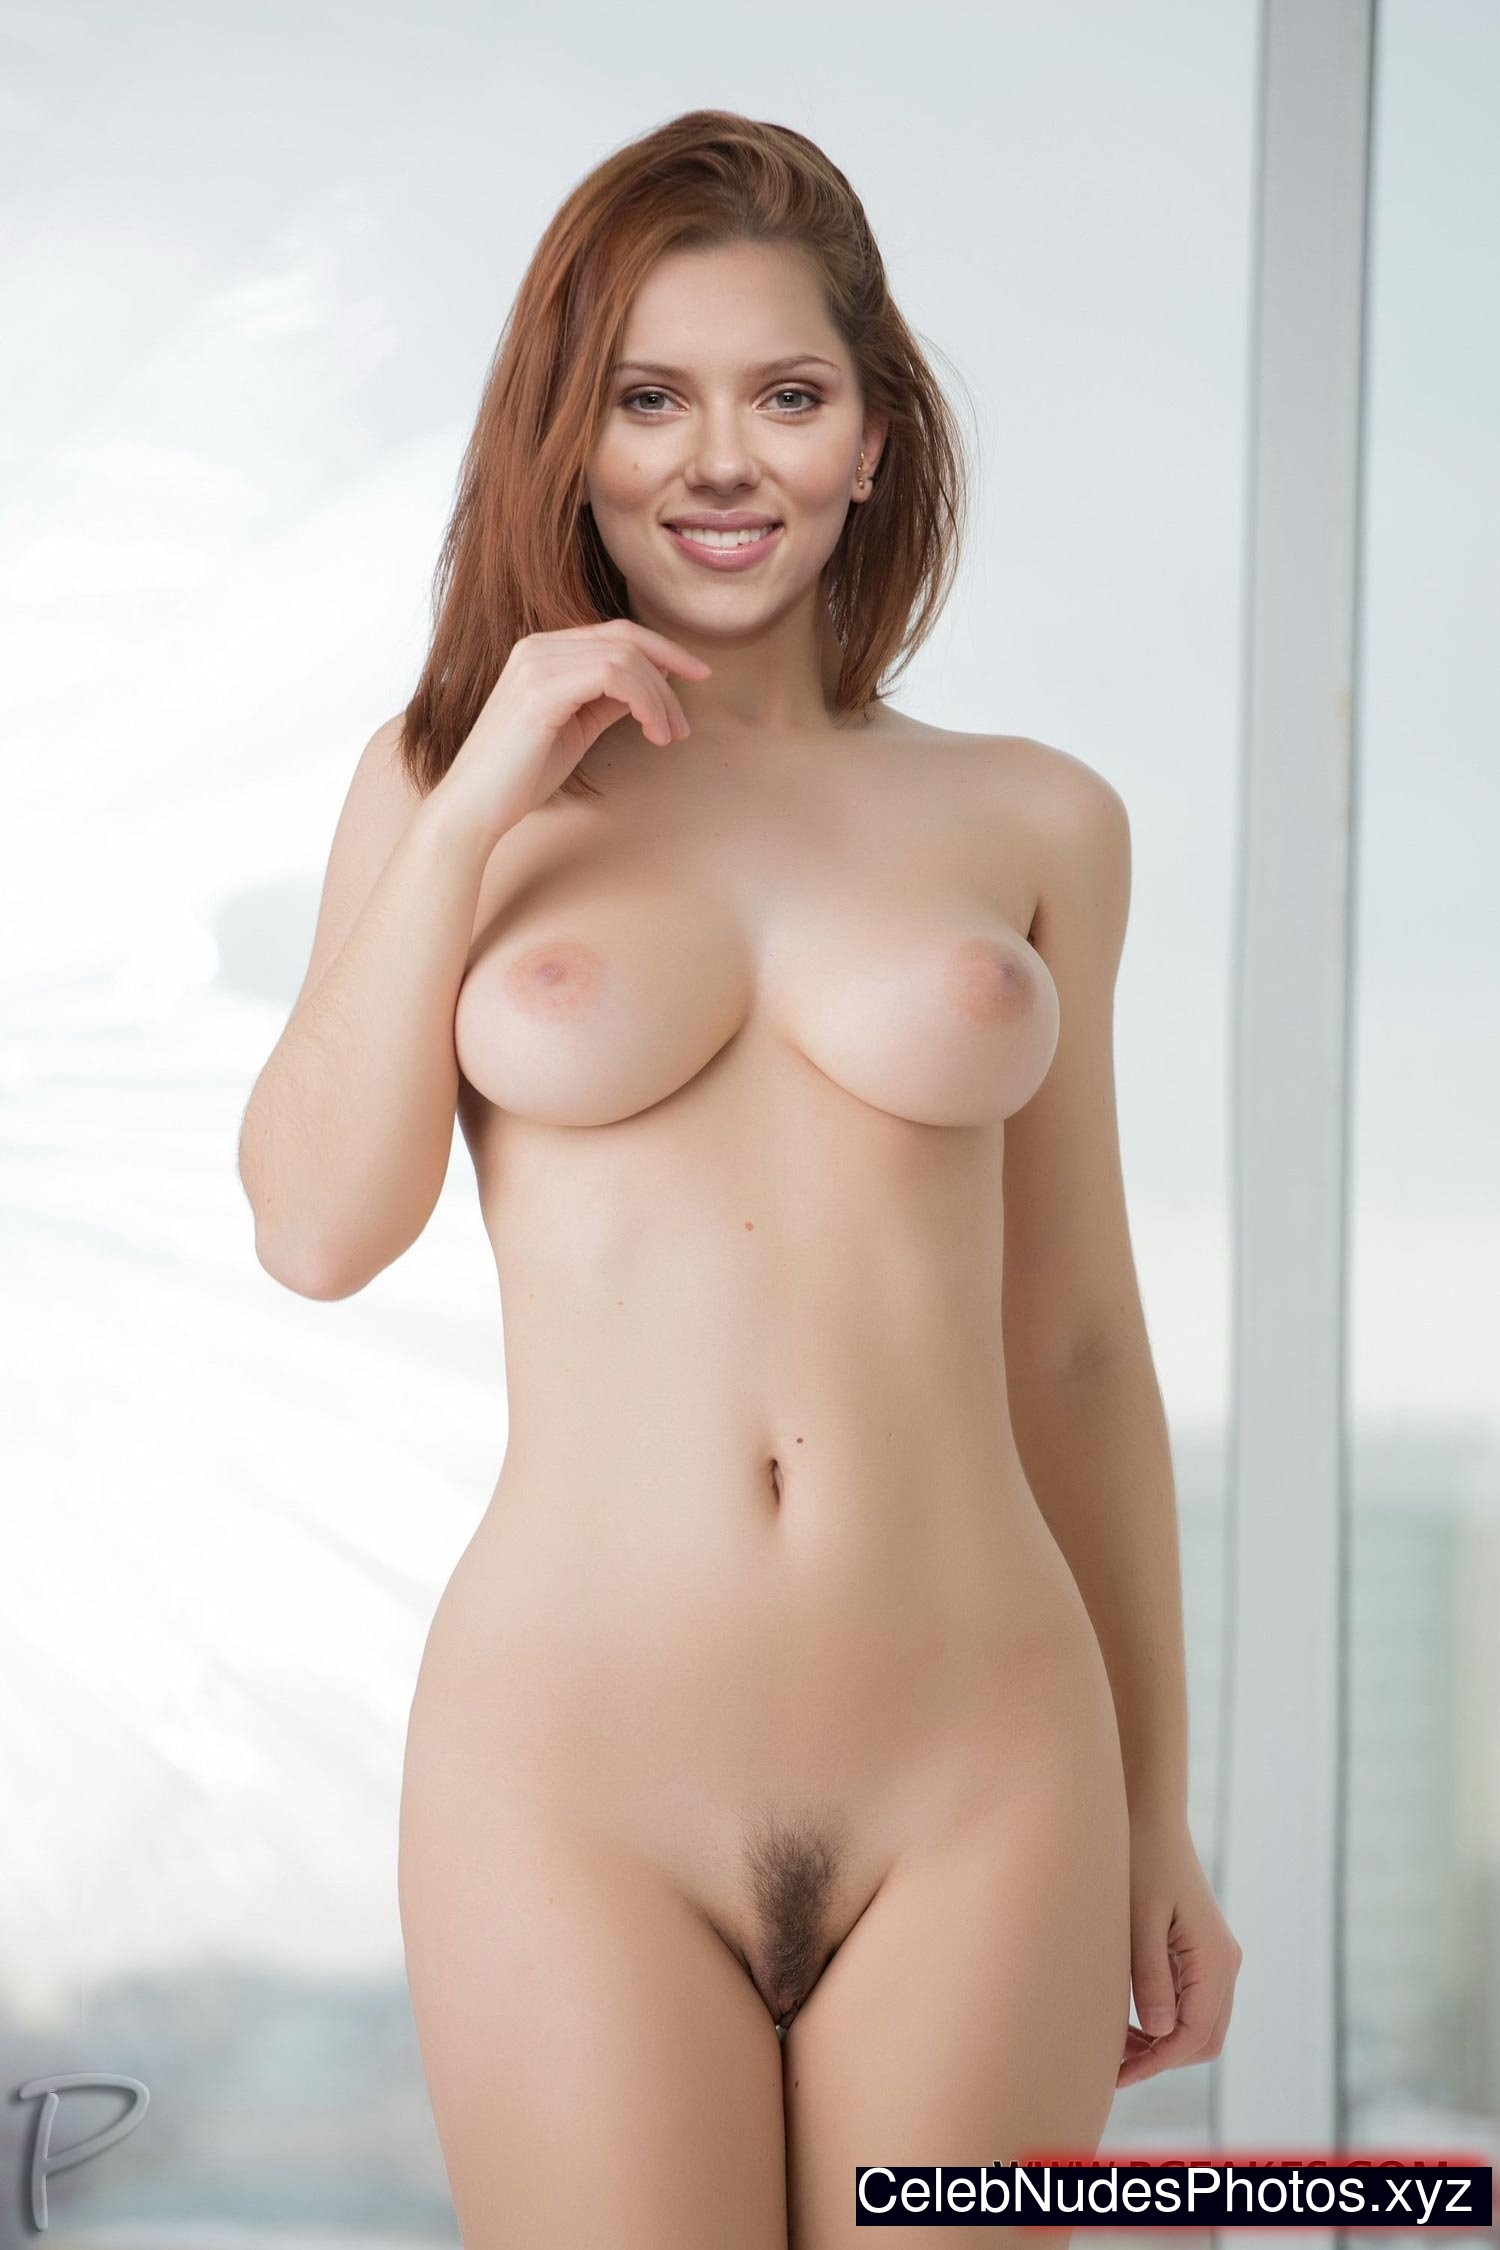 Remarkable, femjoy scarlet a naked apologise